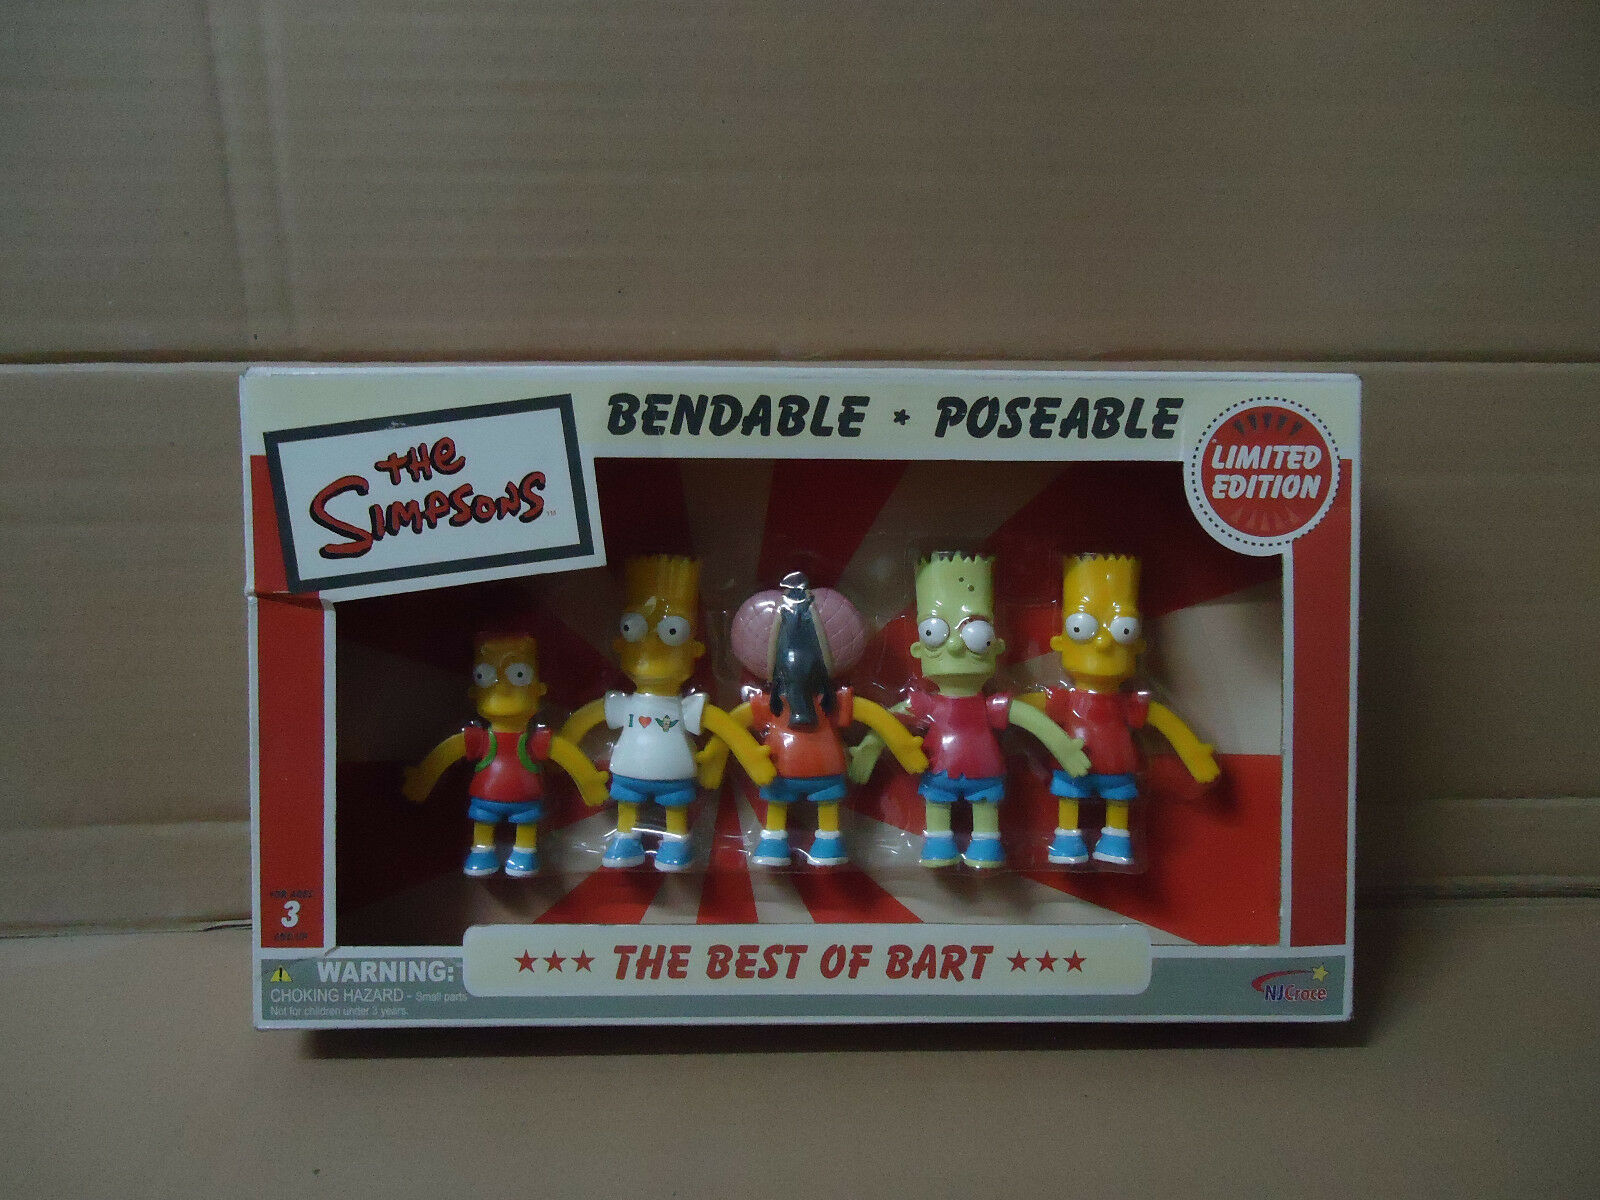 The Simpsons Bendable Poseable Figures The Best of Bart Homer statue figure rare